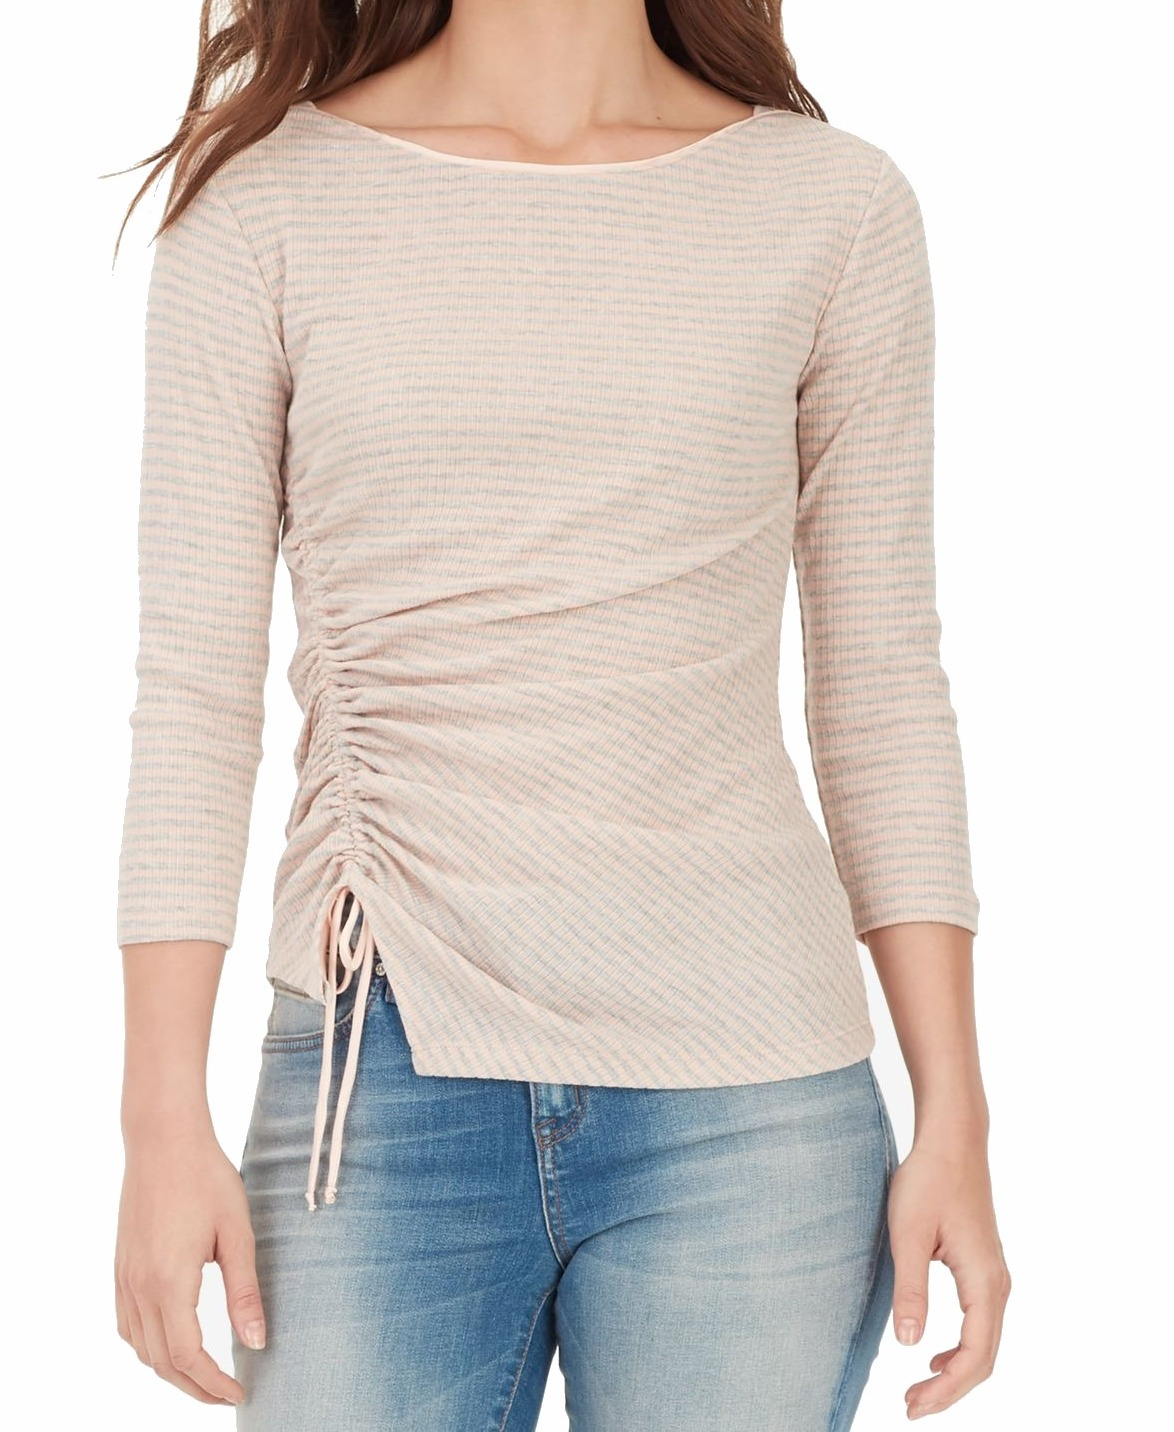 William-Rast-Women-039-s-Top-Blouse-Pink-Size-Large-L-Knit-Ruched-Striped